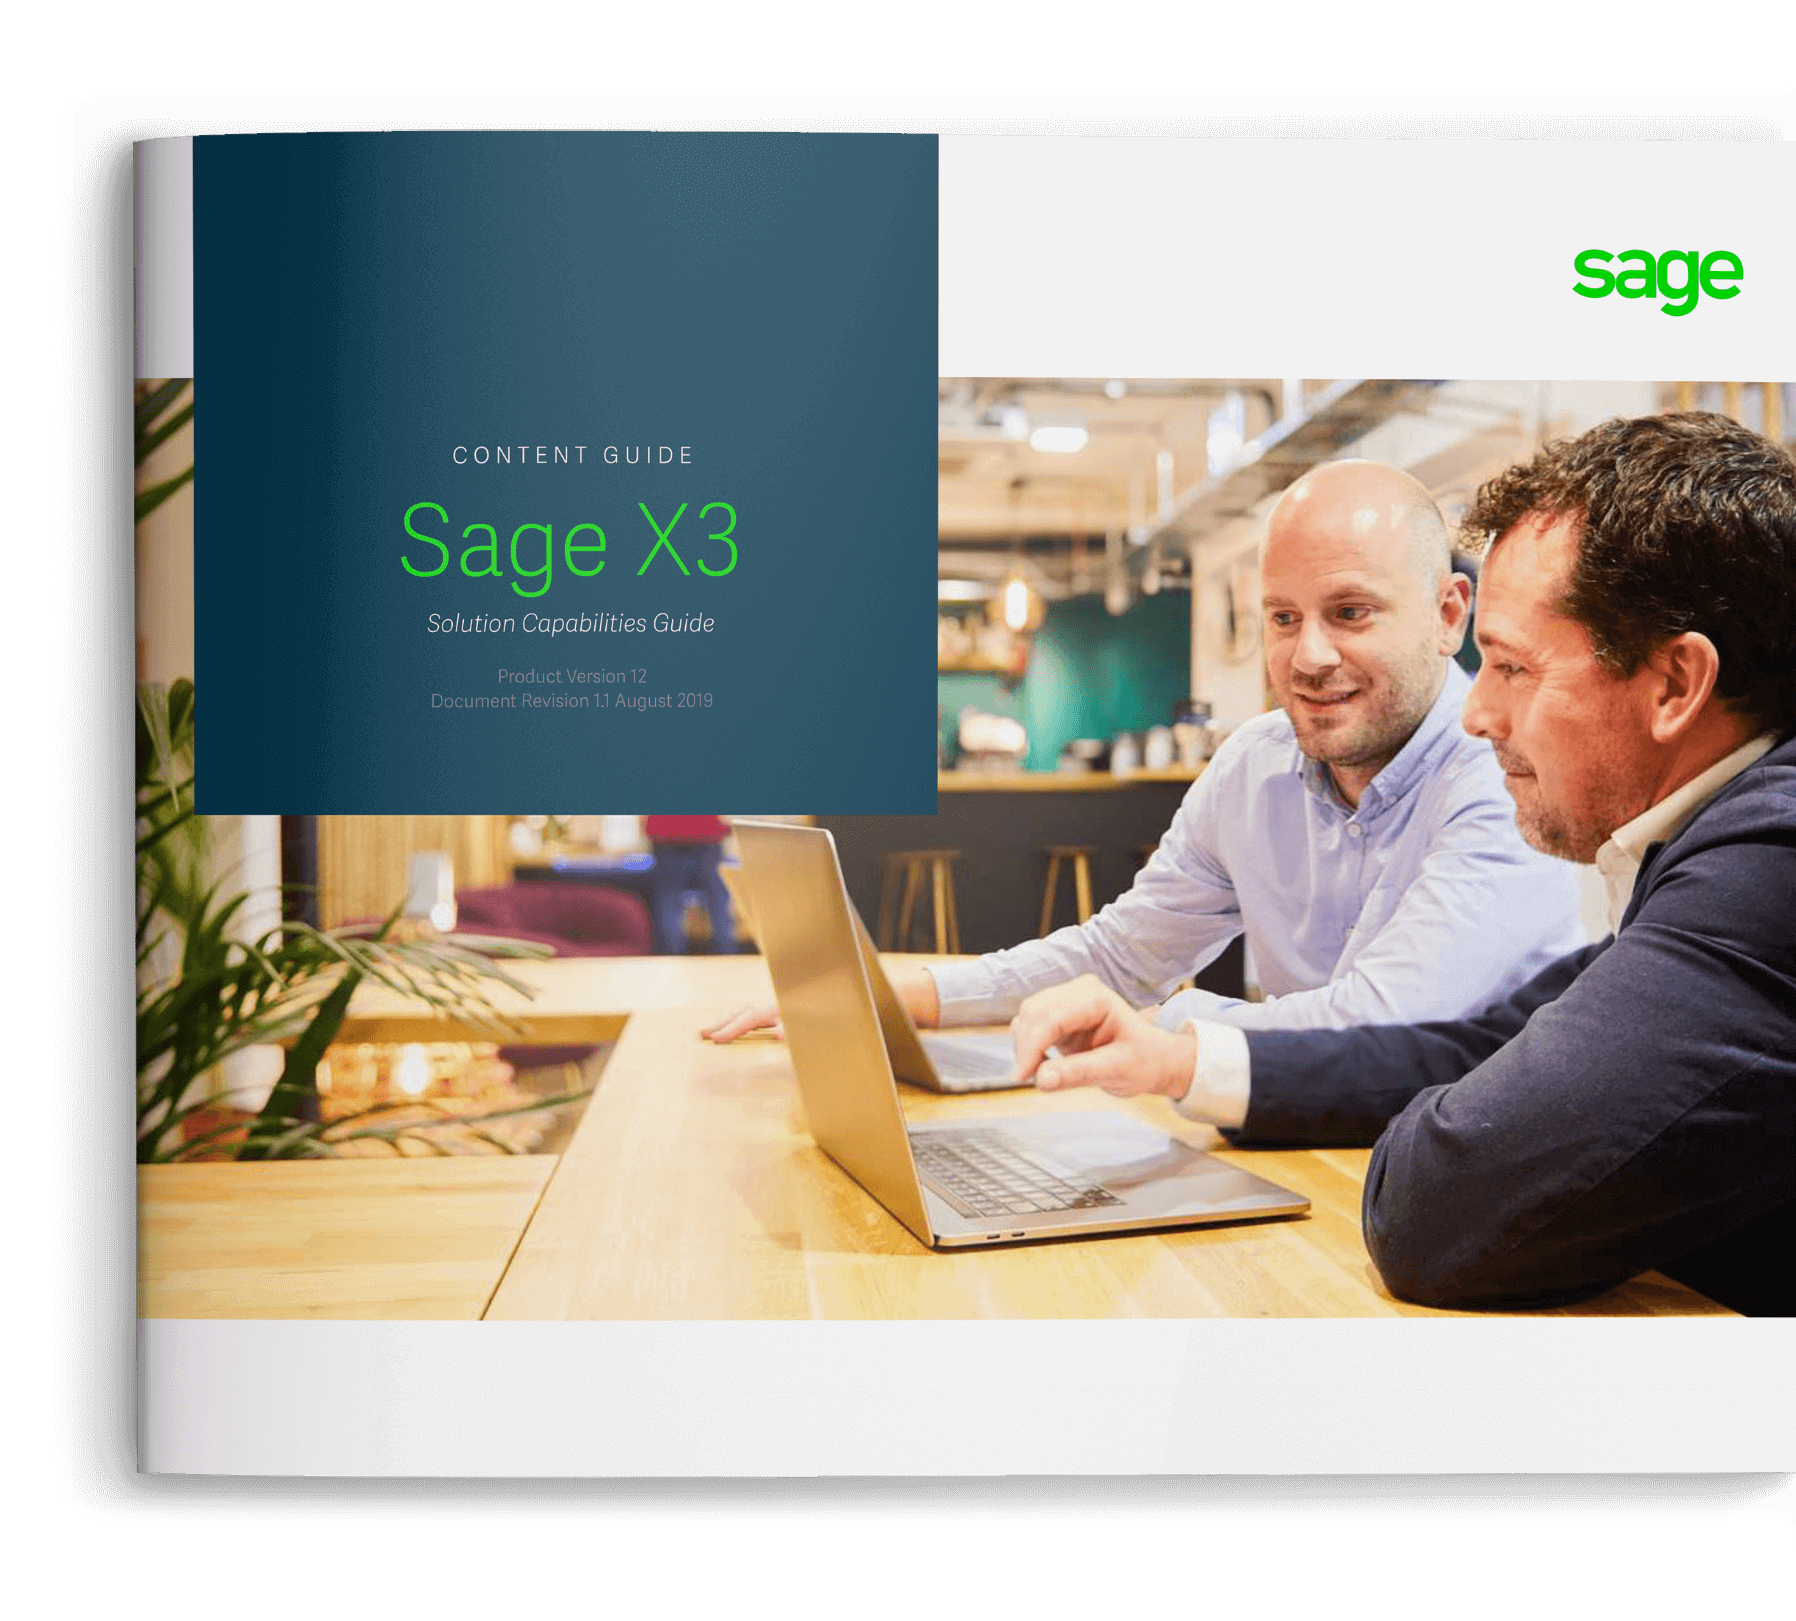 Sage X3 Solution Capabilities Guide cover